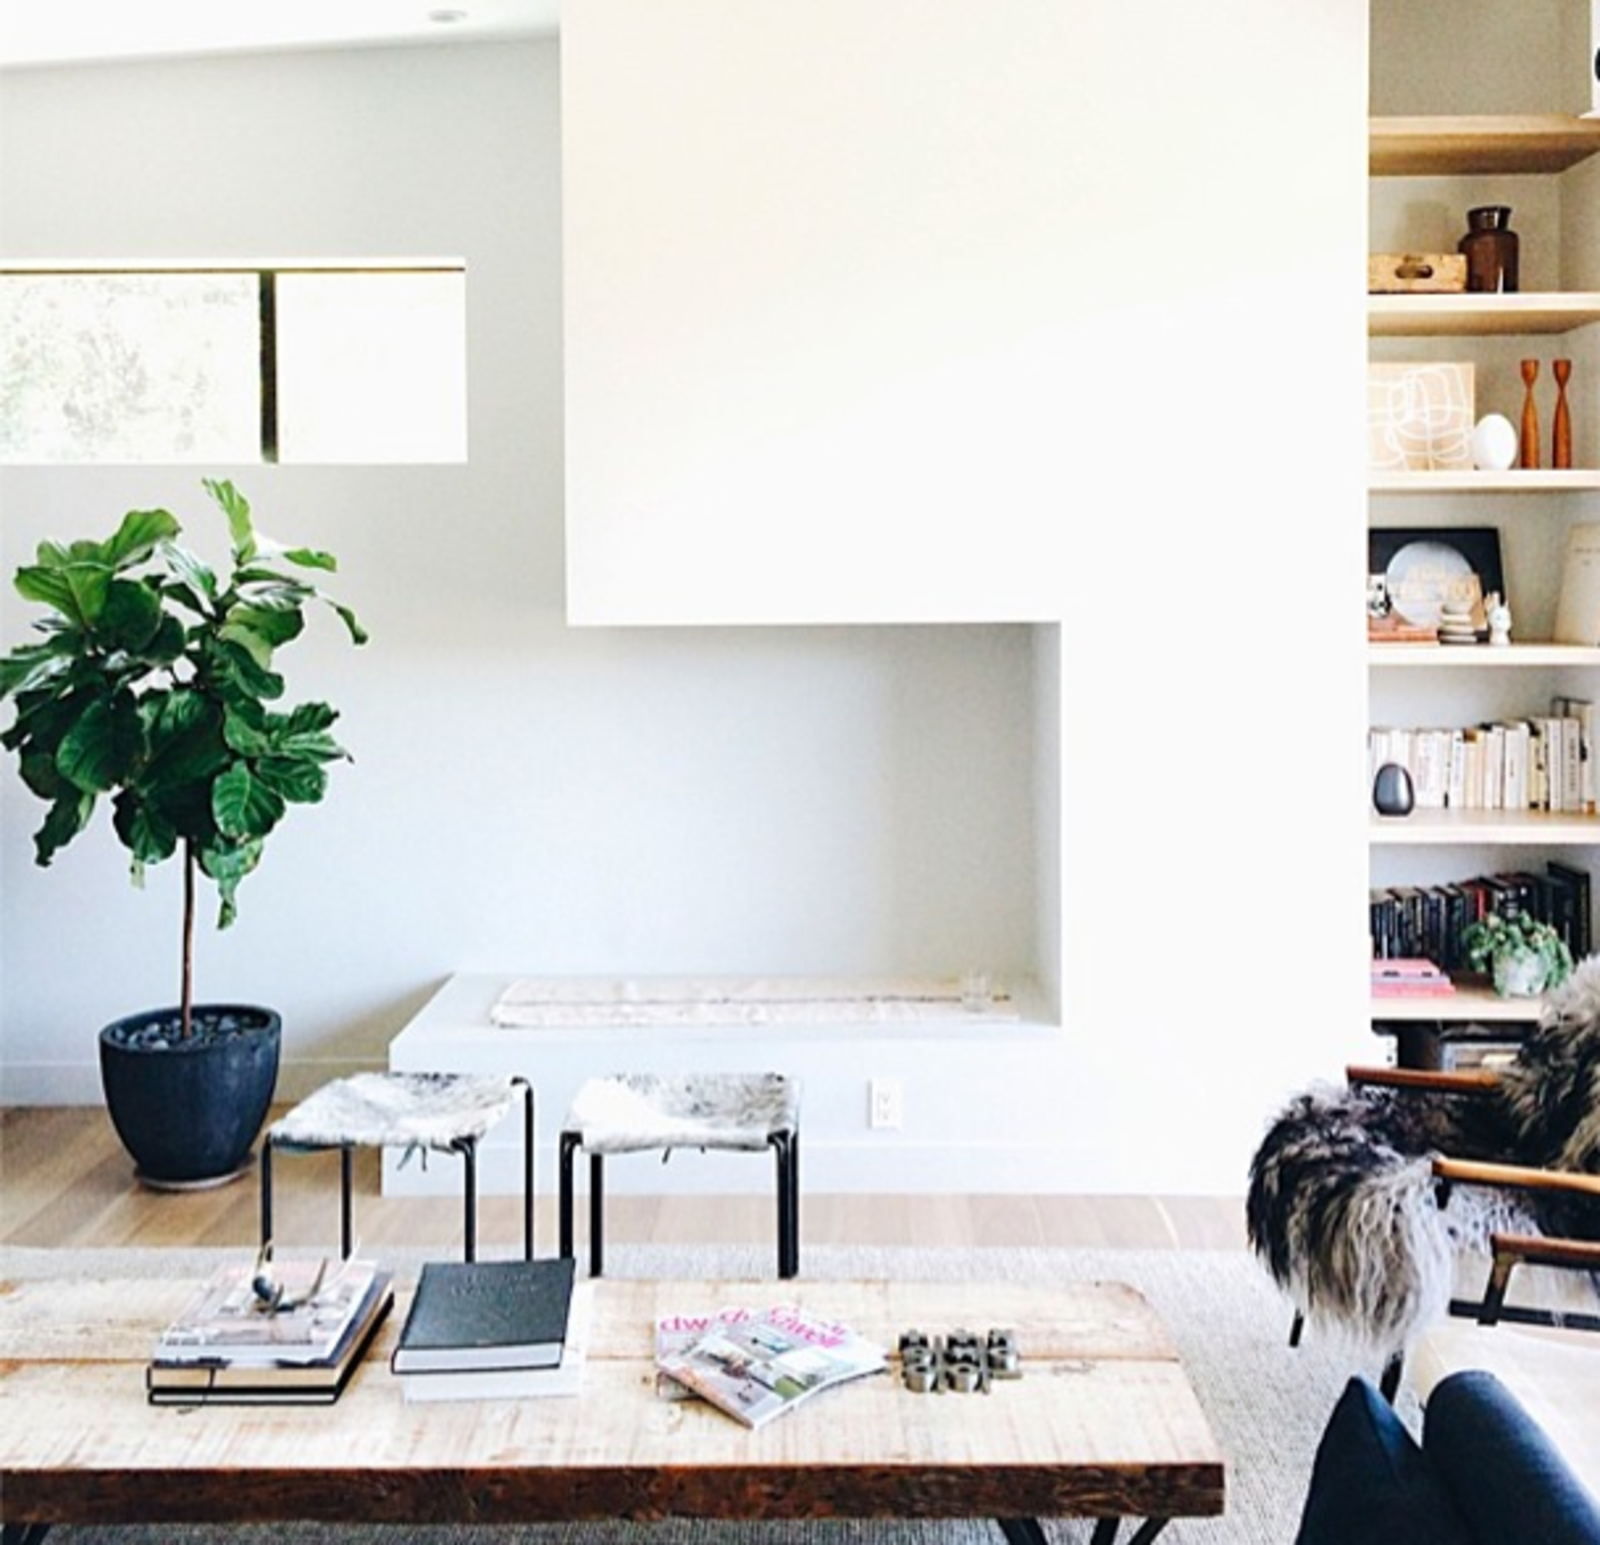 """@jeffmindell: """"Living room, Murnane House @dwellmagazine @dwellondesign #dod2014 #dwellondesign #dwellASID #inspiredesign""""  Dwell on Design East Side Home Tour  Dwell on Design 2014: Day Two in Instagrams by Allie Weiss"""